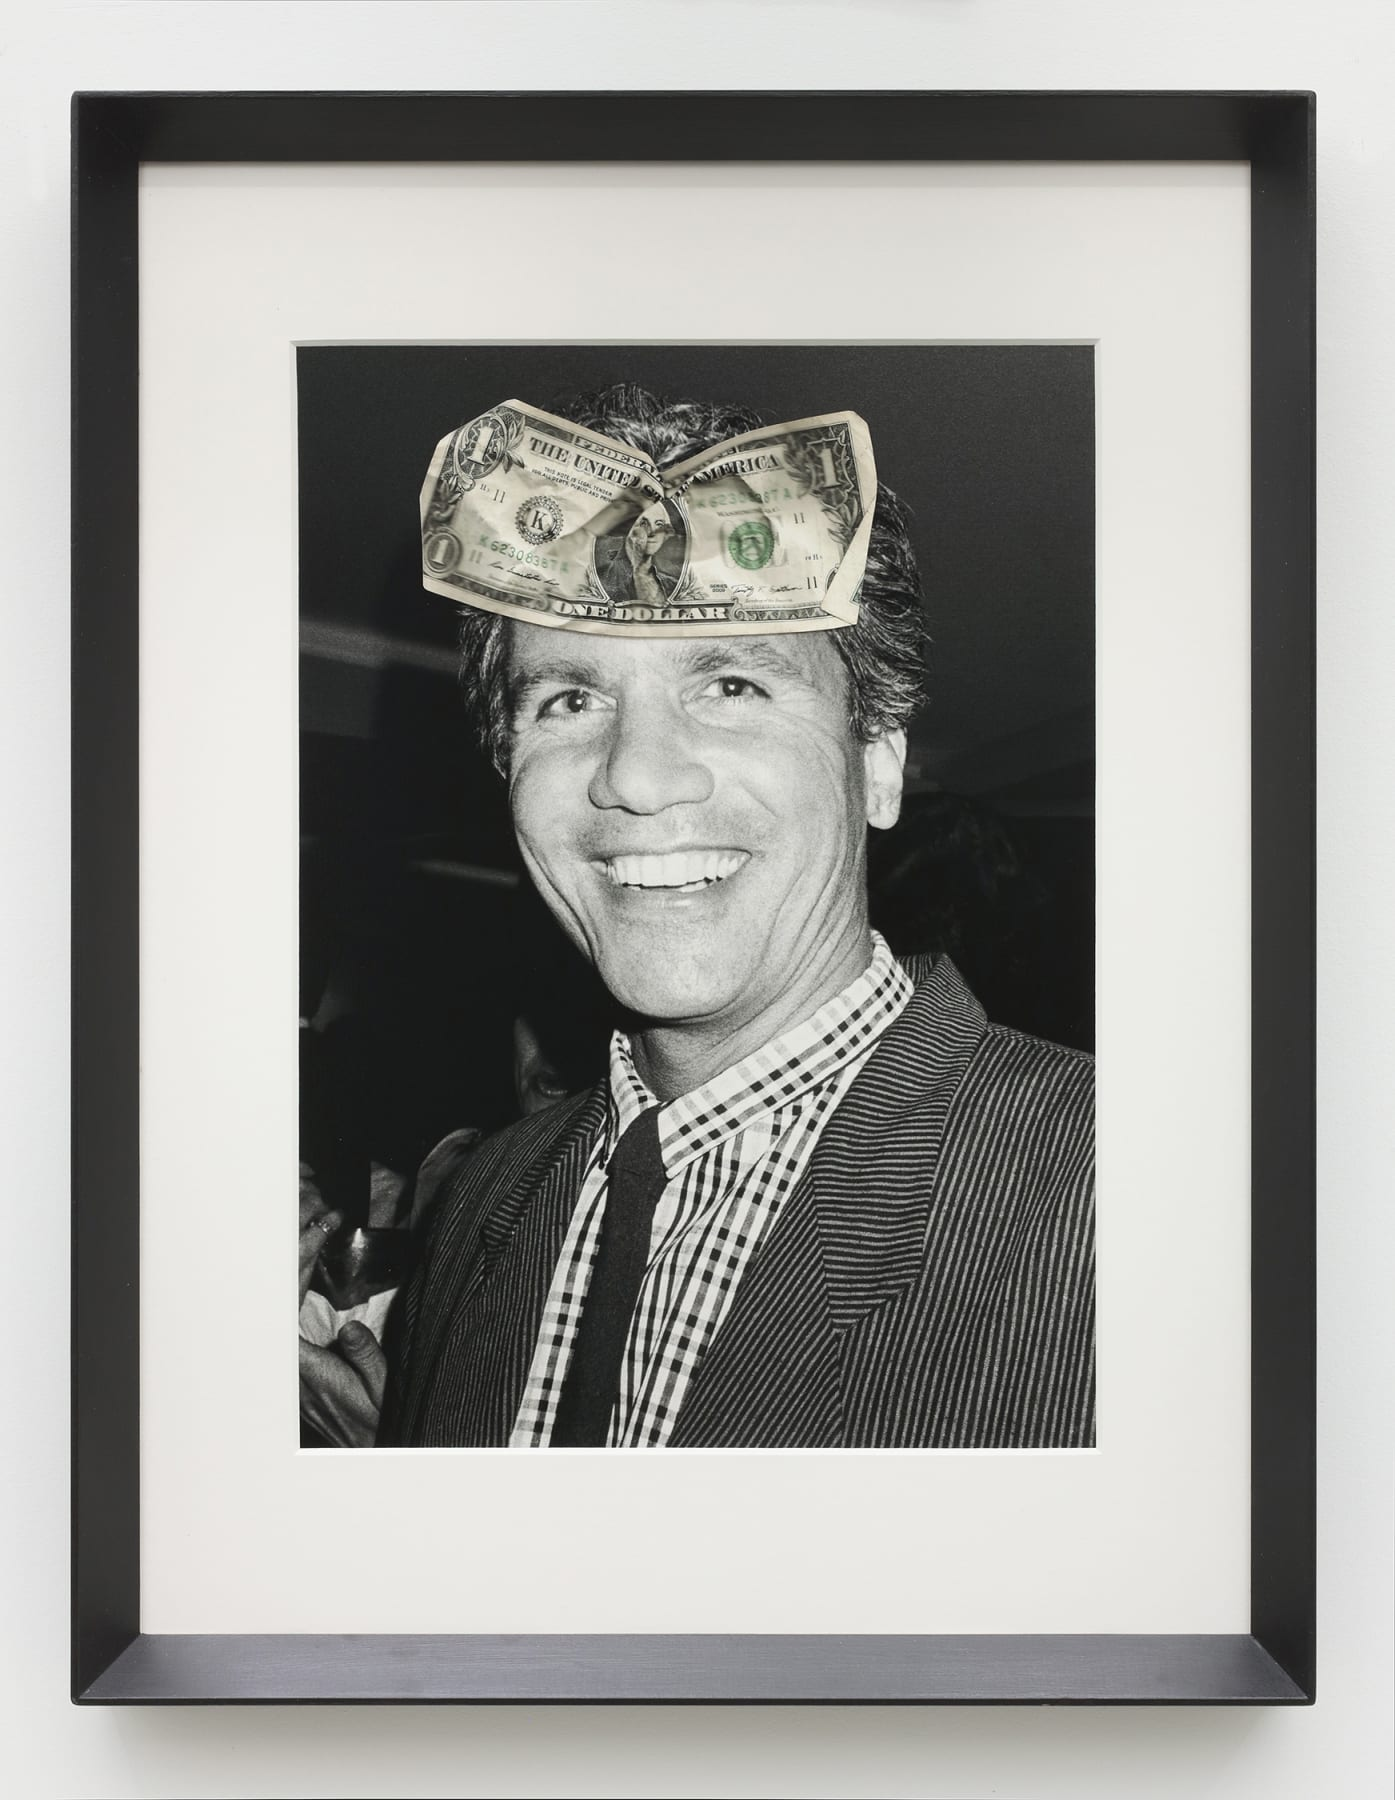 A framed black and white photograph of a man with a dollar bill attached to the image on his forehead